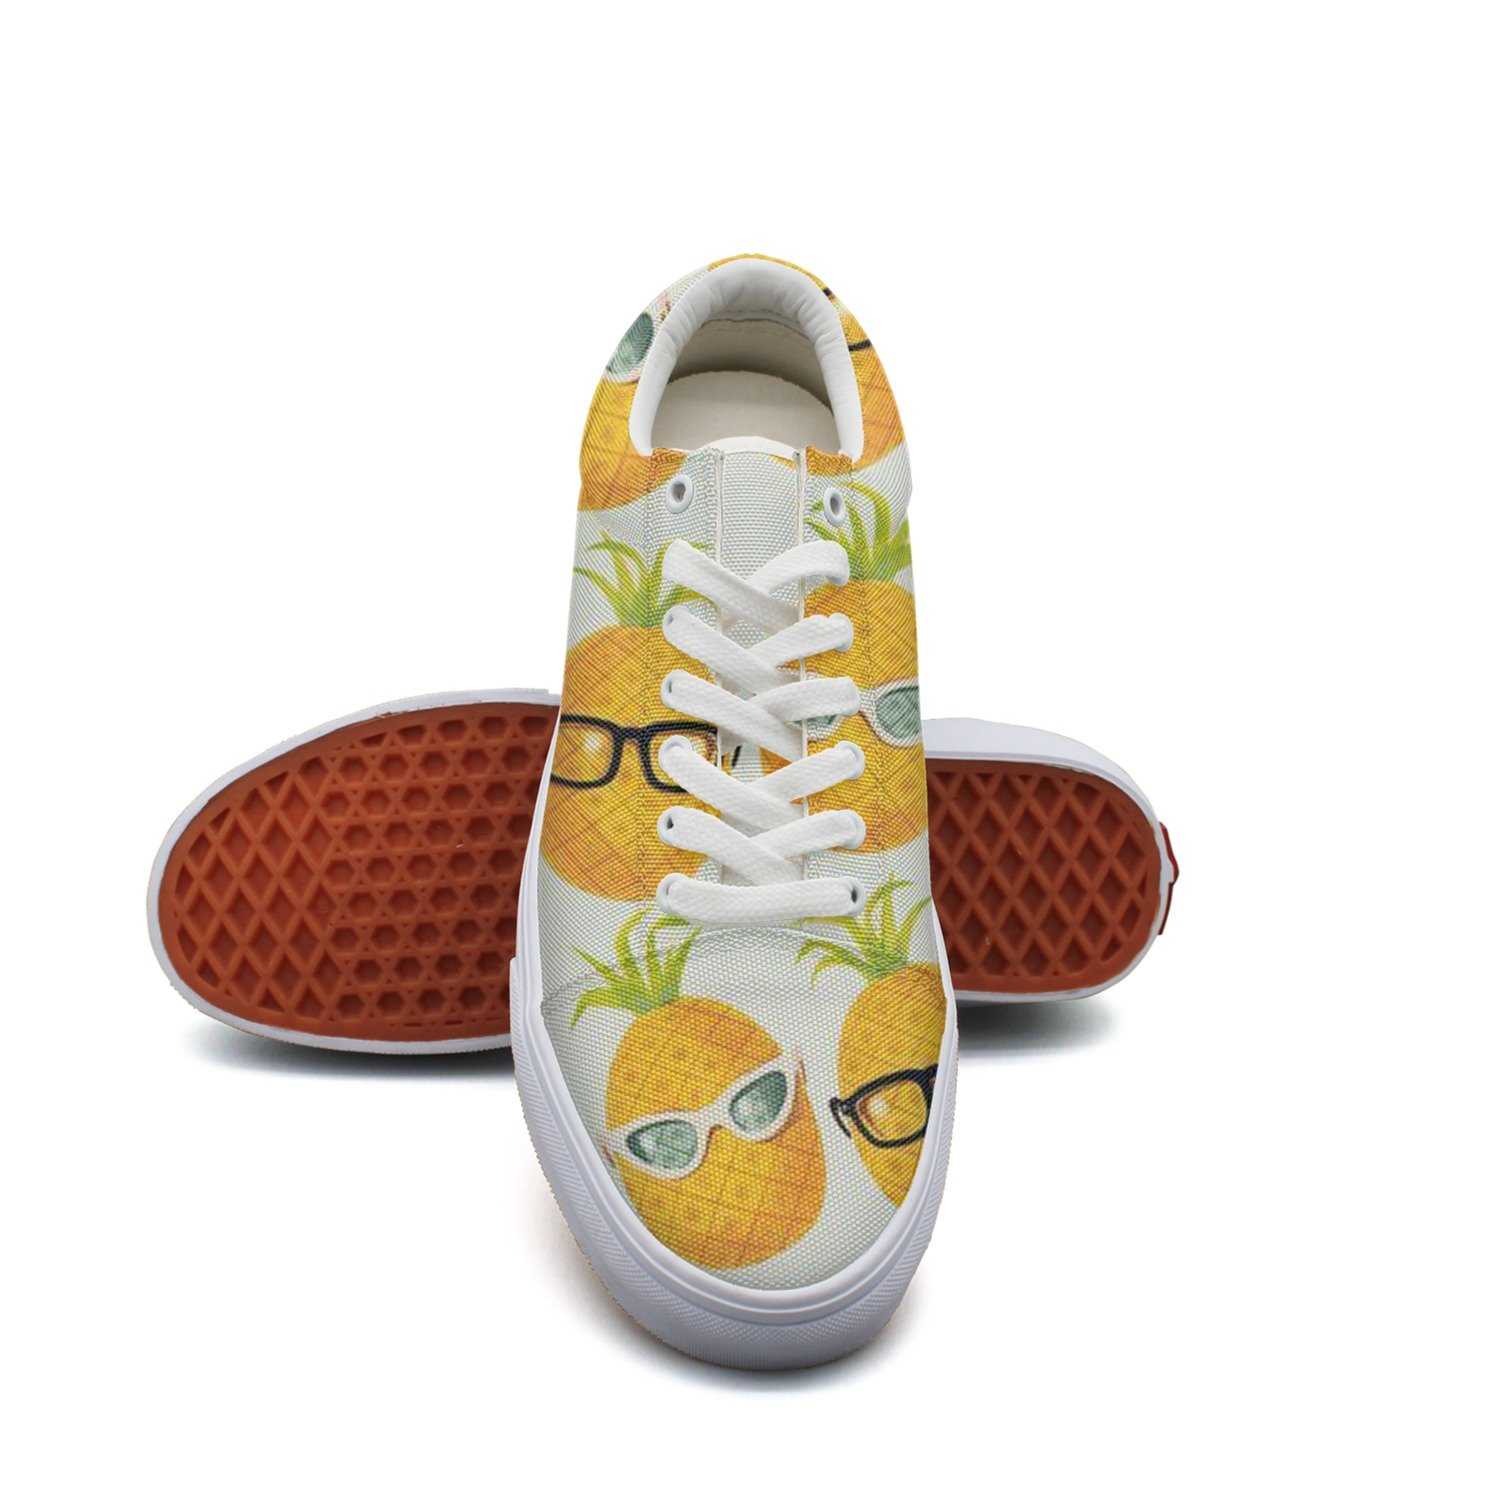 Pineapple With Glasses Cool Women¡s Casual Sneakers Shoes Skateboard Customize Low Top Trainers